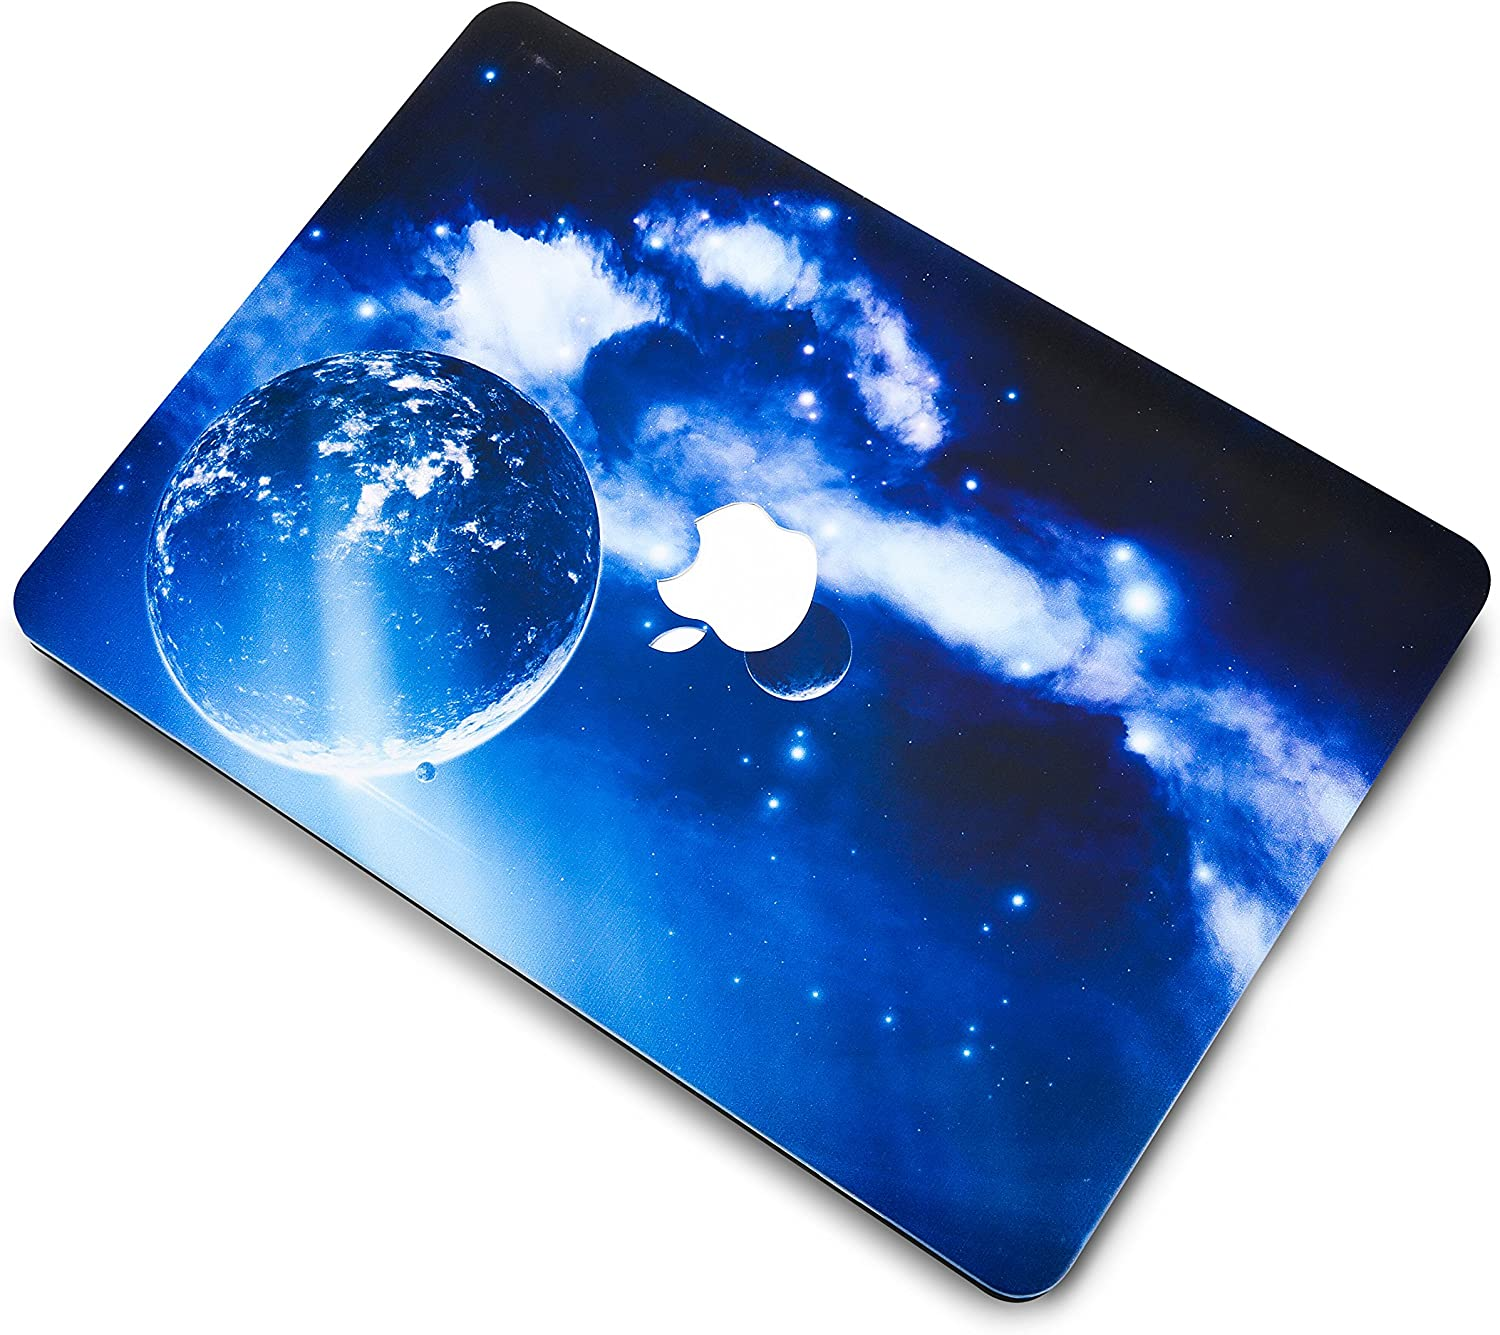 w//Keyboard Cover Plastic Hard Shell Cover A1278 2 in 1 Bundle Purple Flower CD Drive KECC Laptop Case for Old MacBook Pro 13